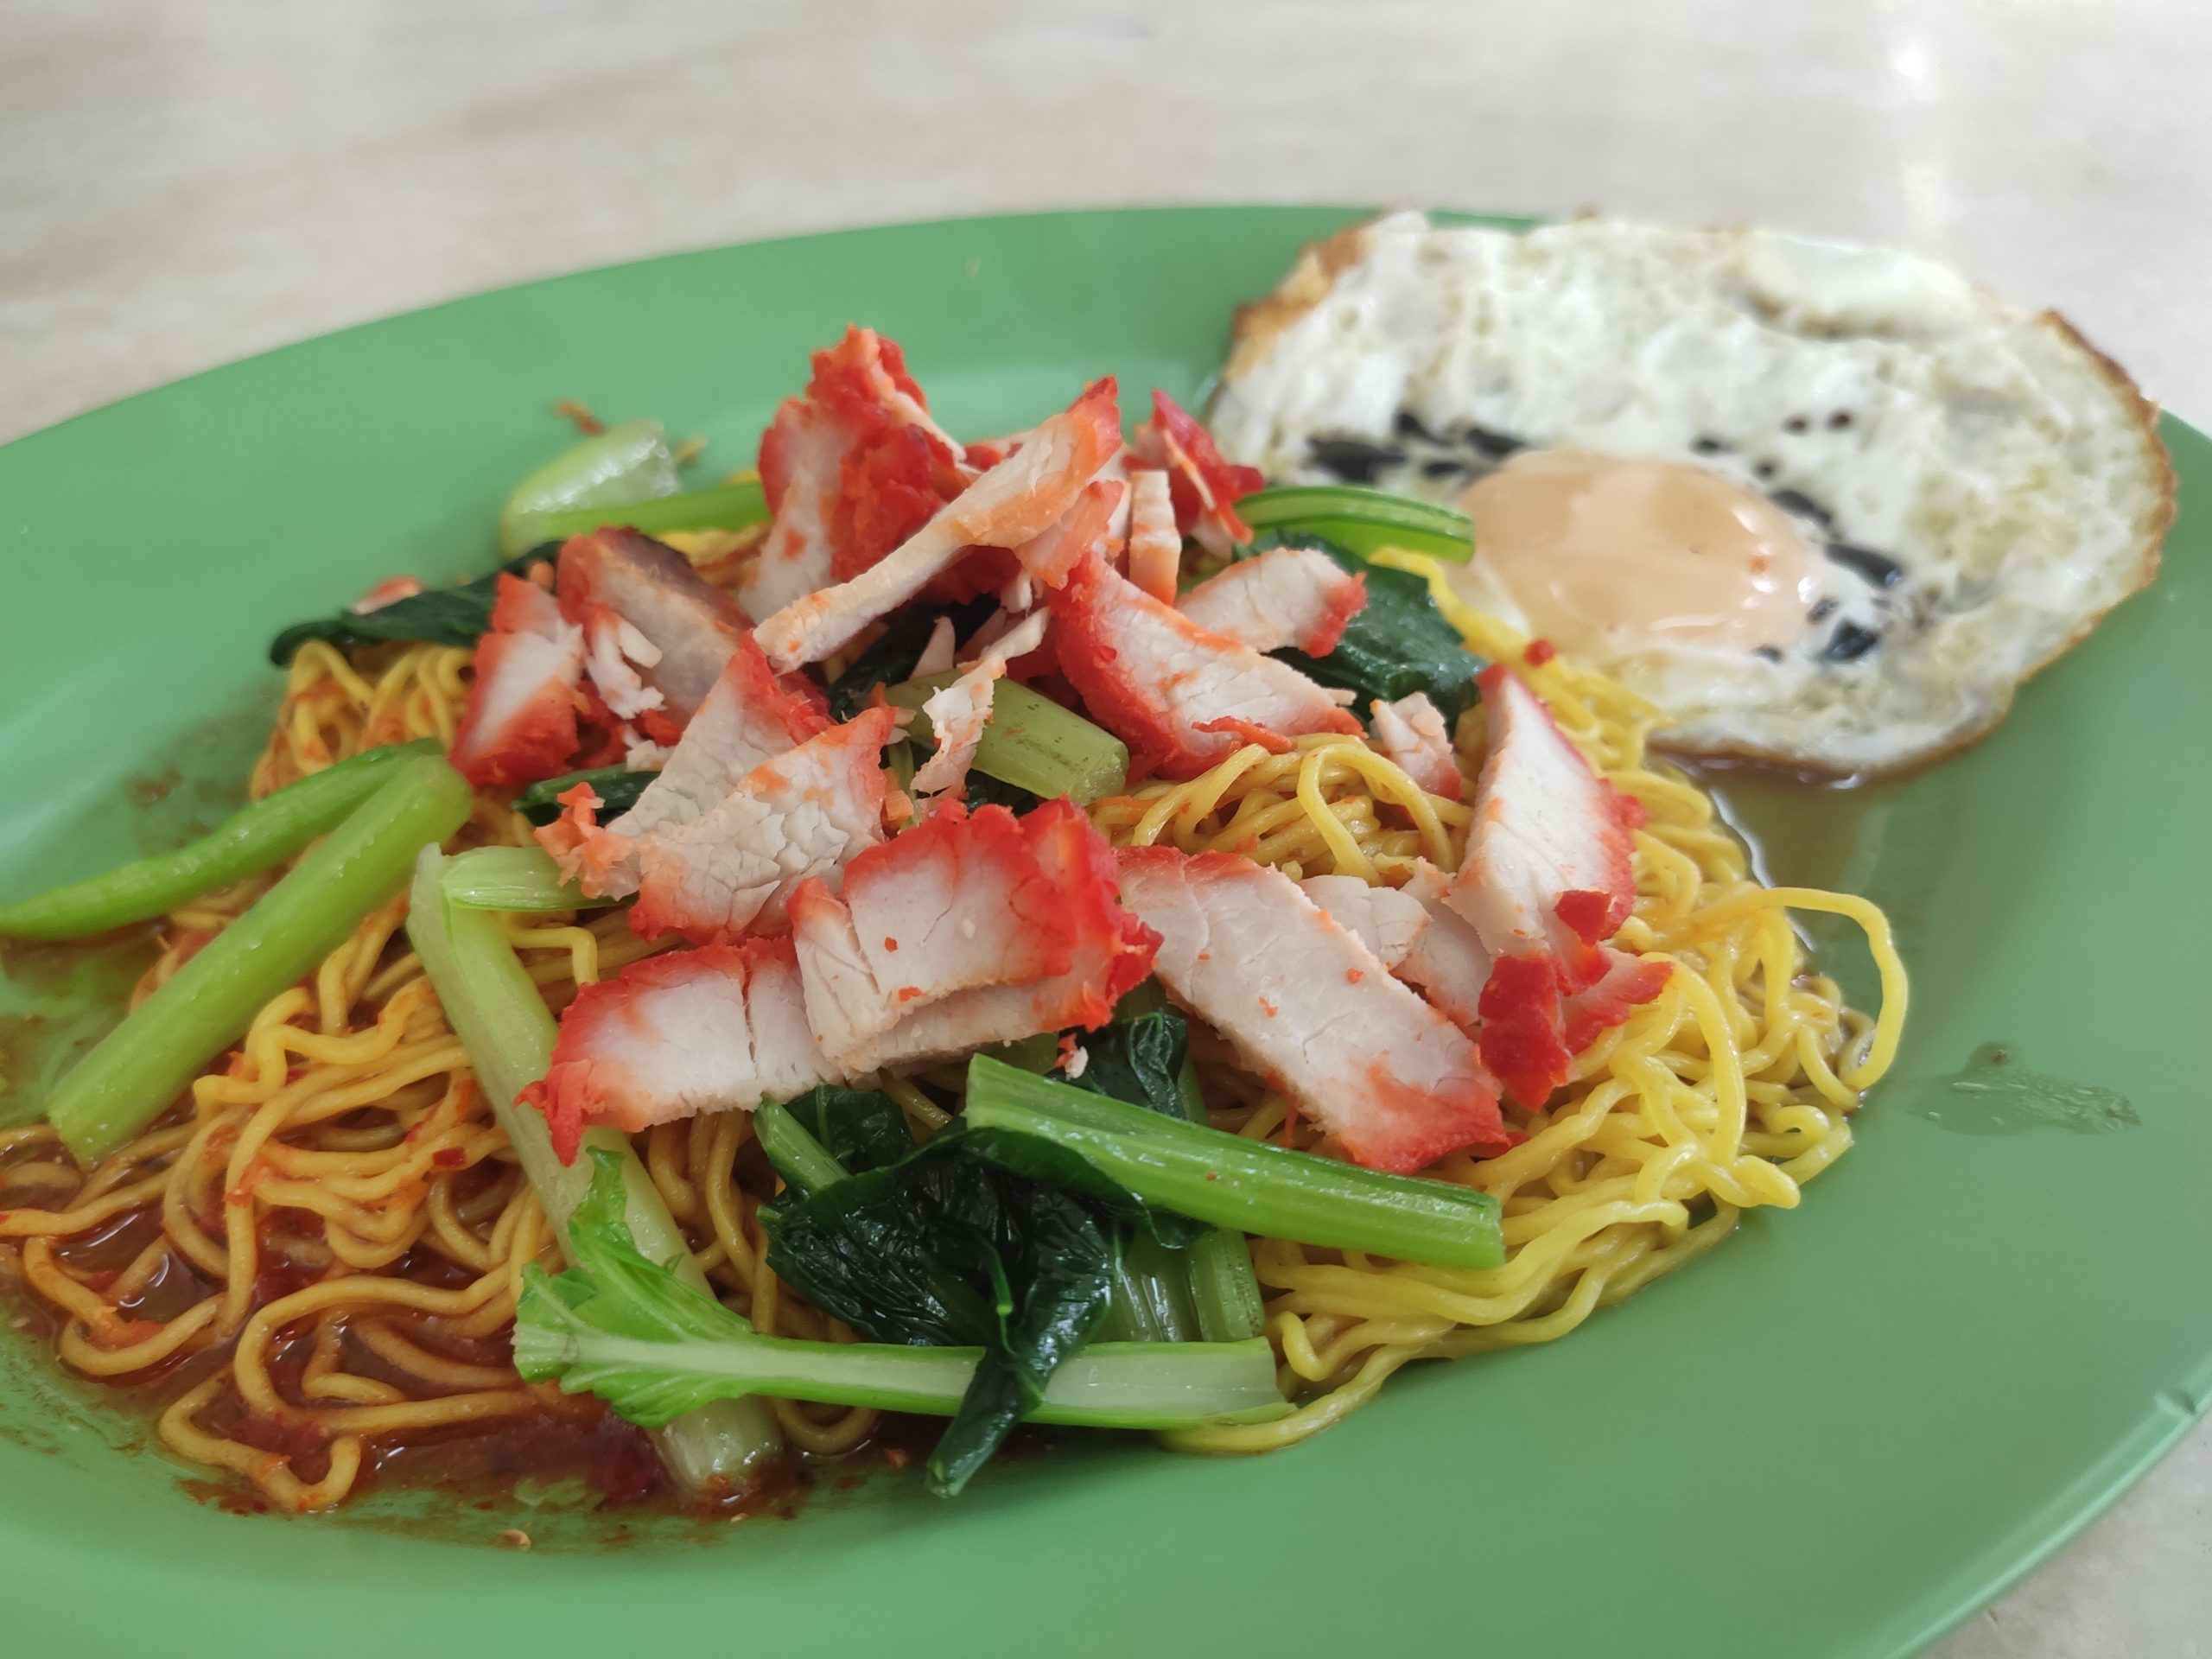 Tjao Sin Wanton Mee: Char Siew Noodles with Fried Egg